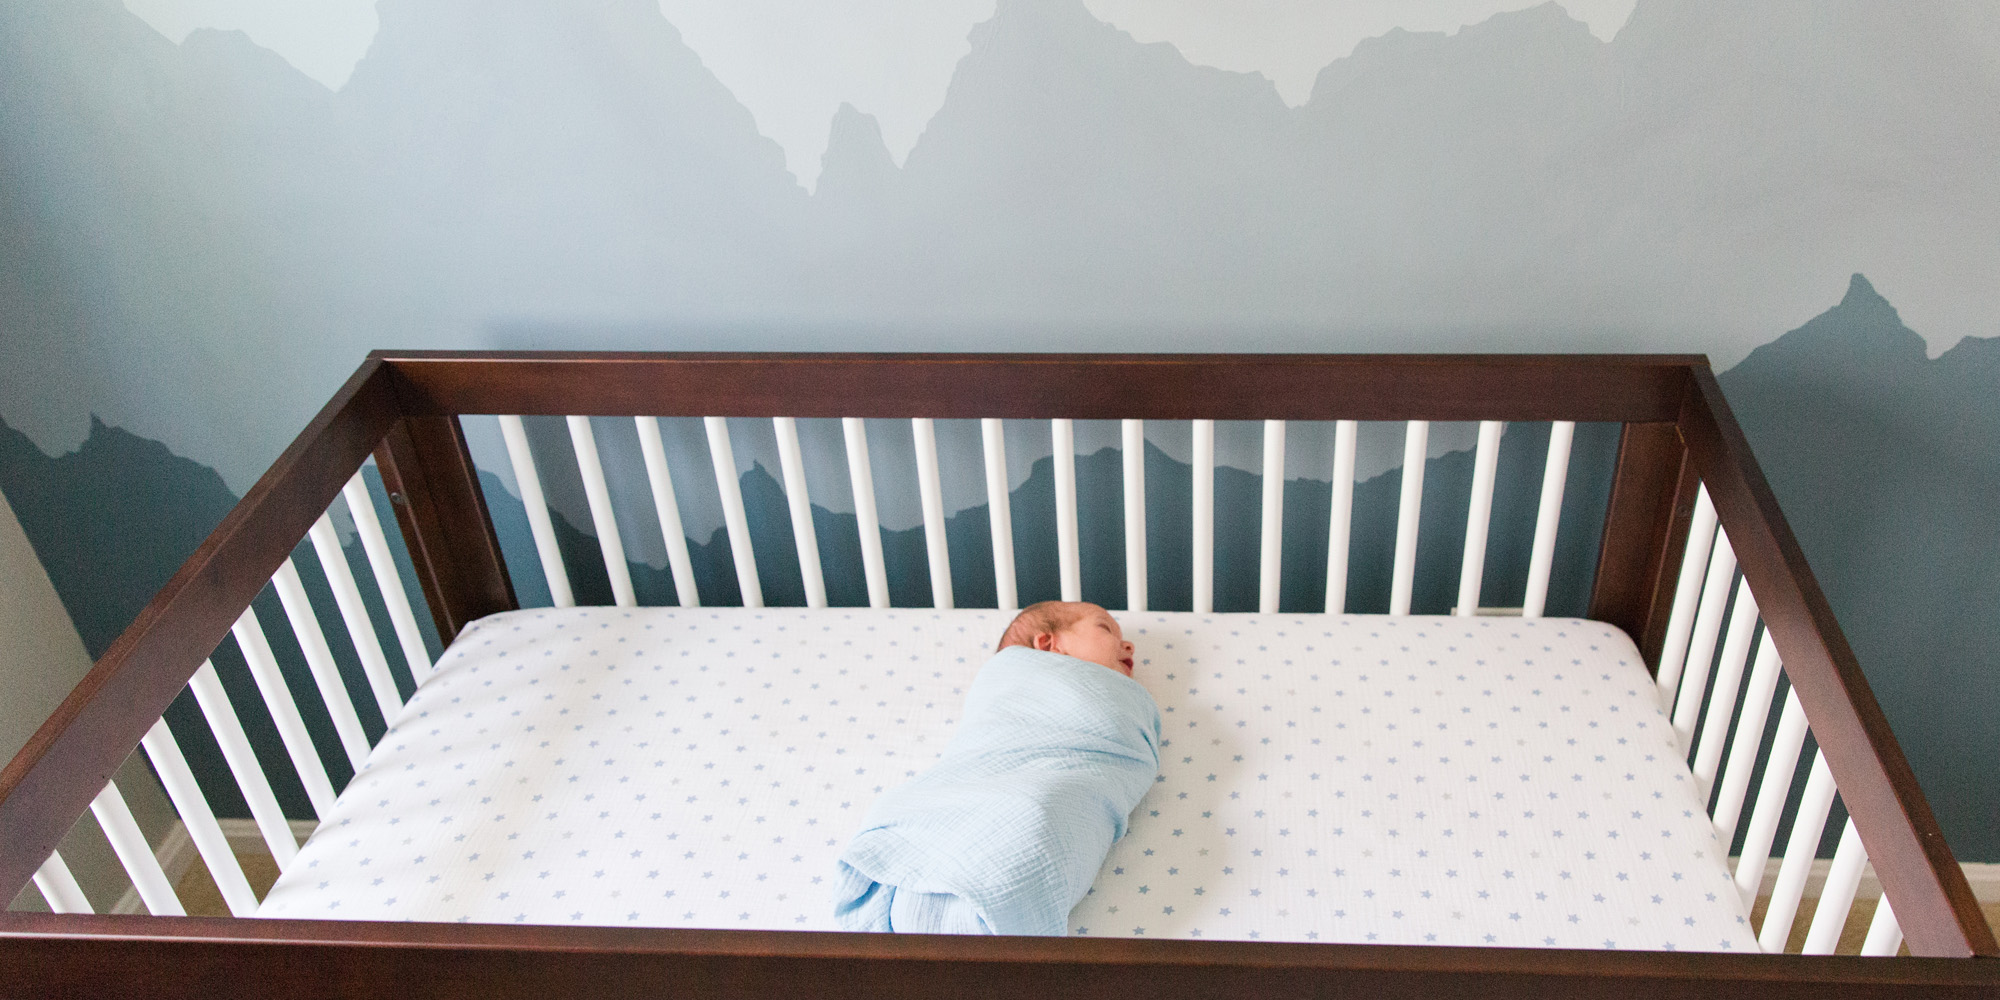 Newborn boy laying in crib taken by DMV newborn photographer Sarah Botta Photography